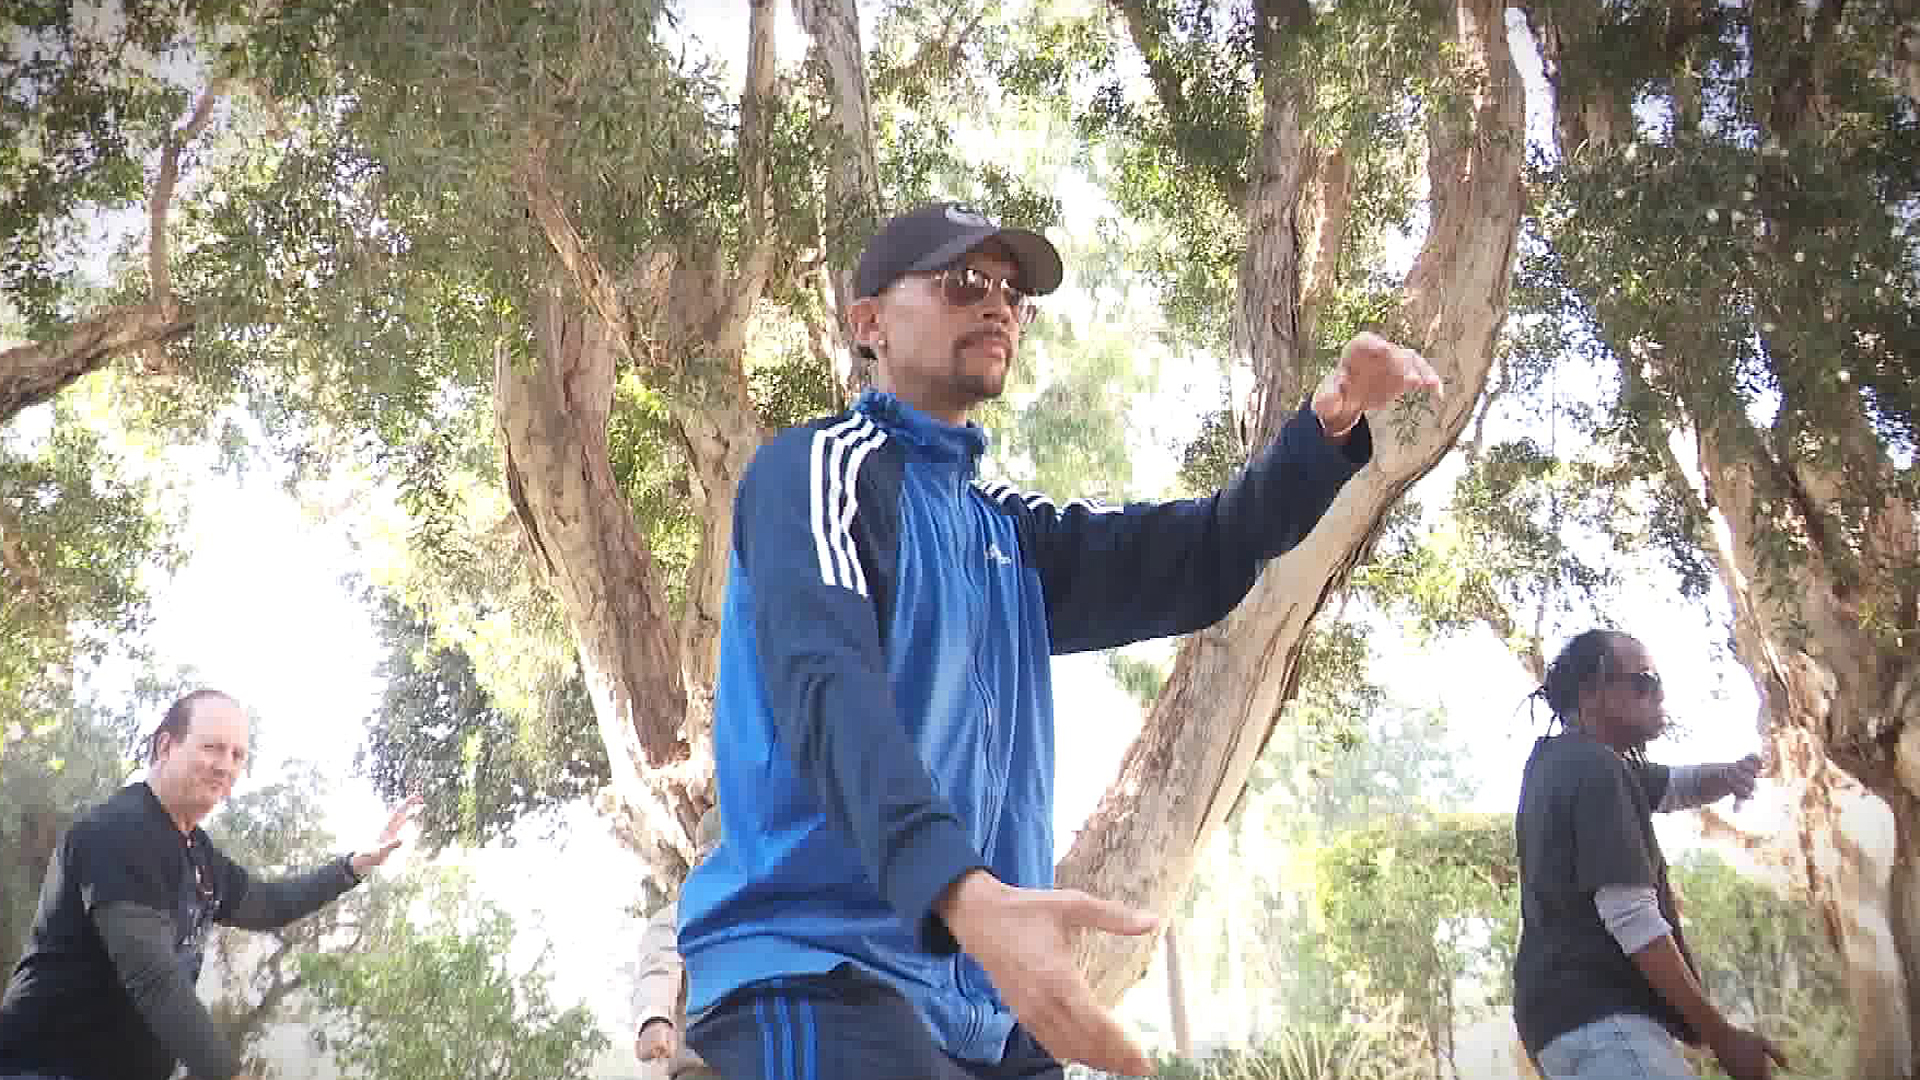 The ancient tradition of tai chi has been shown to benefit muscle strength, flexibility and balance. (Credit: KTLA)